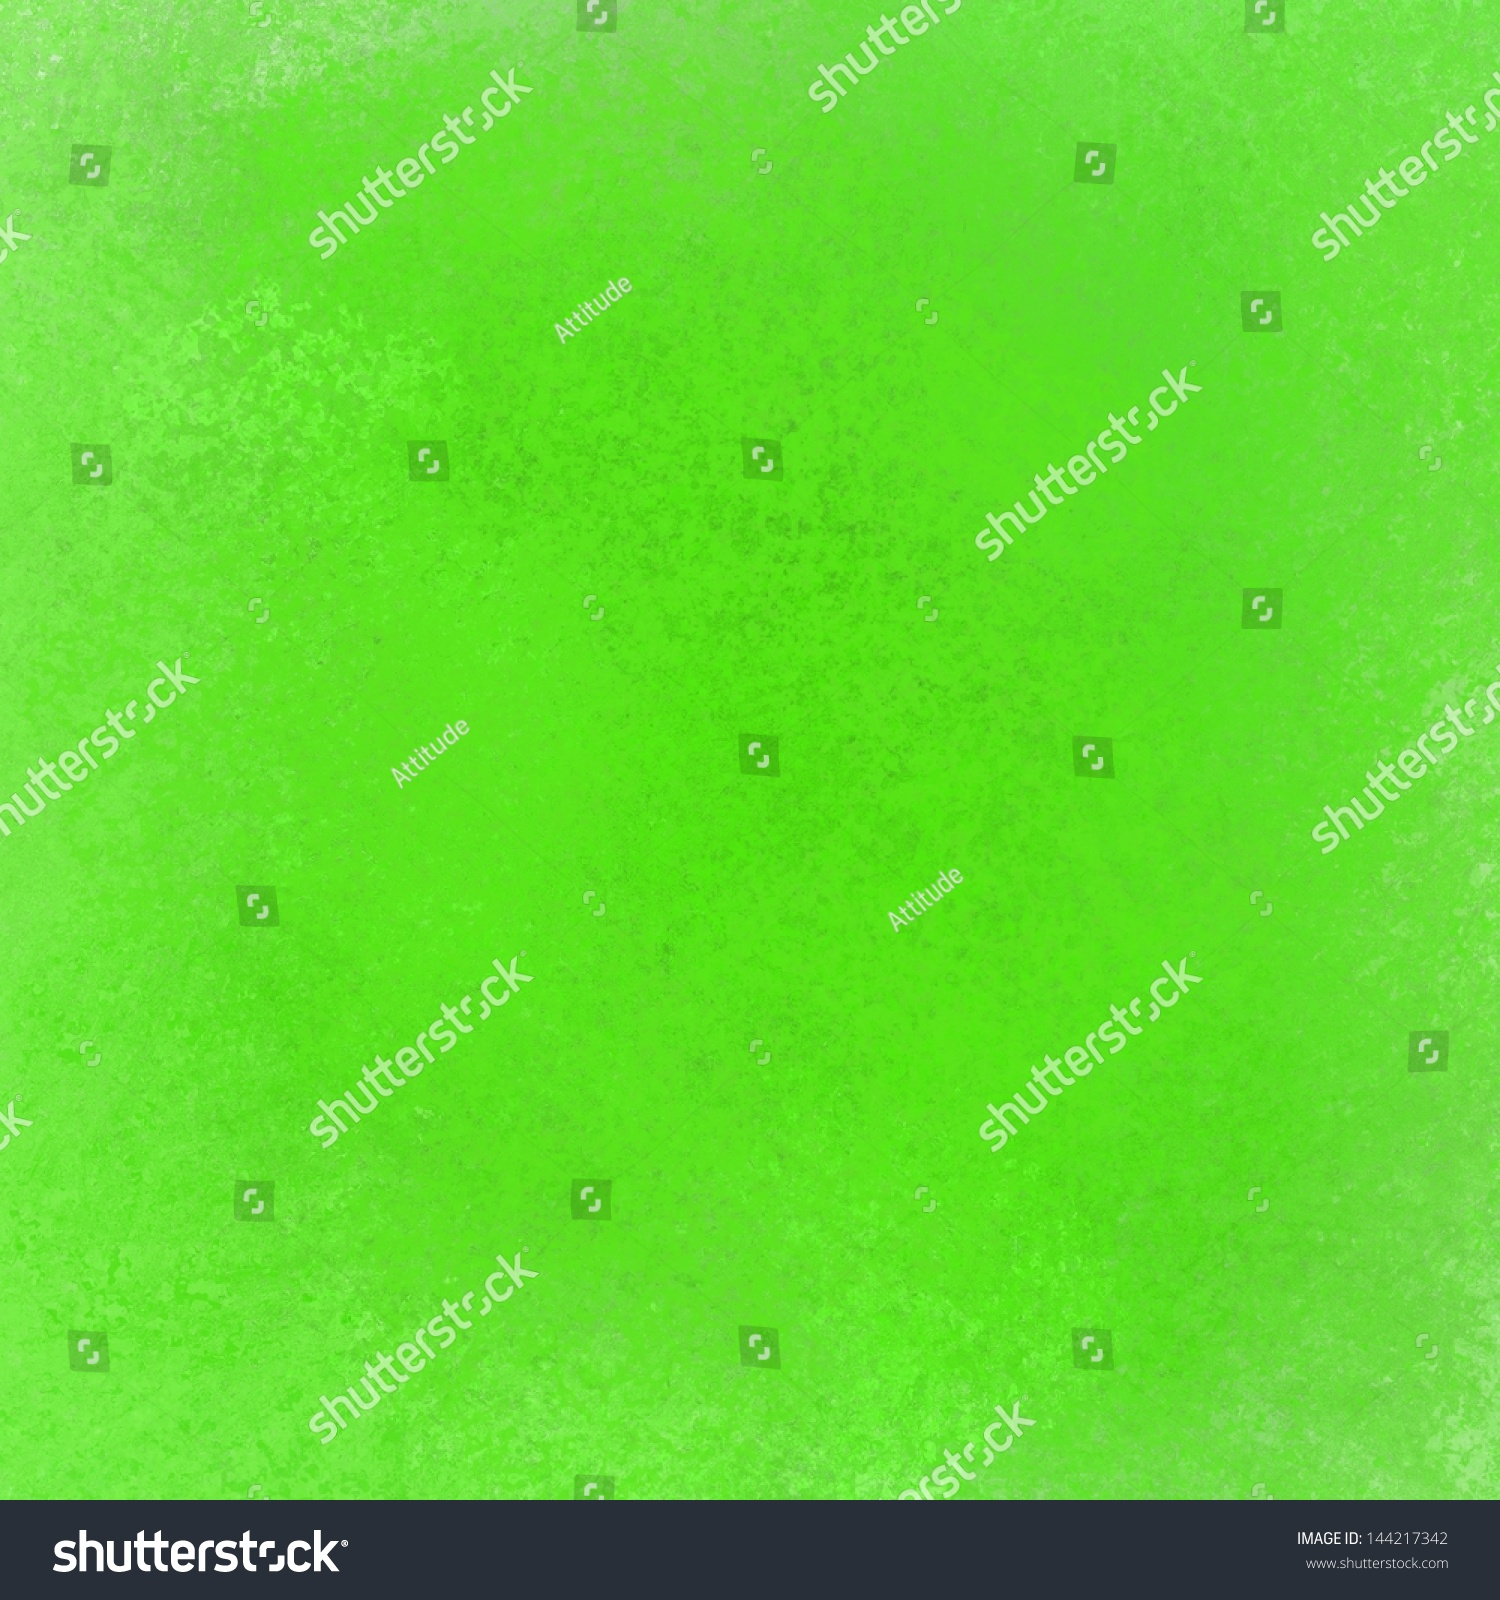 Web colors lime - Lemon Lime Green Background Yellow Vibrant Neon Color Tone Bright Green Background Christmas Festive Design